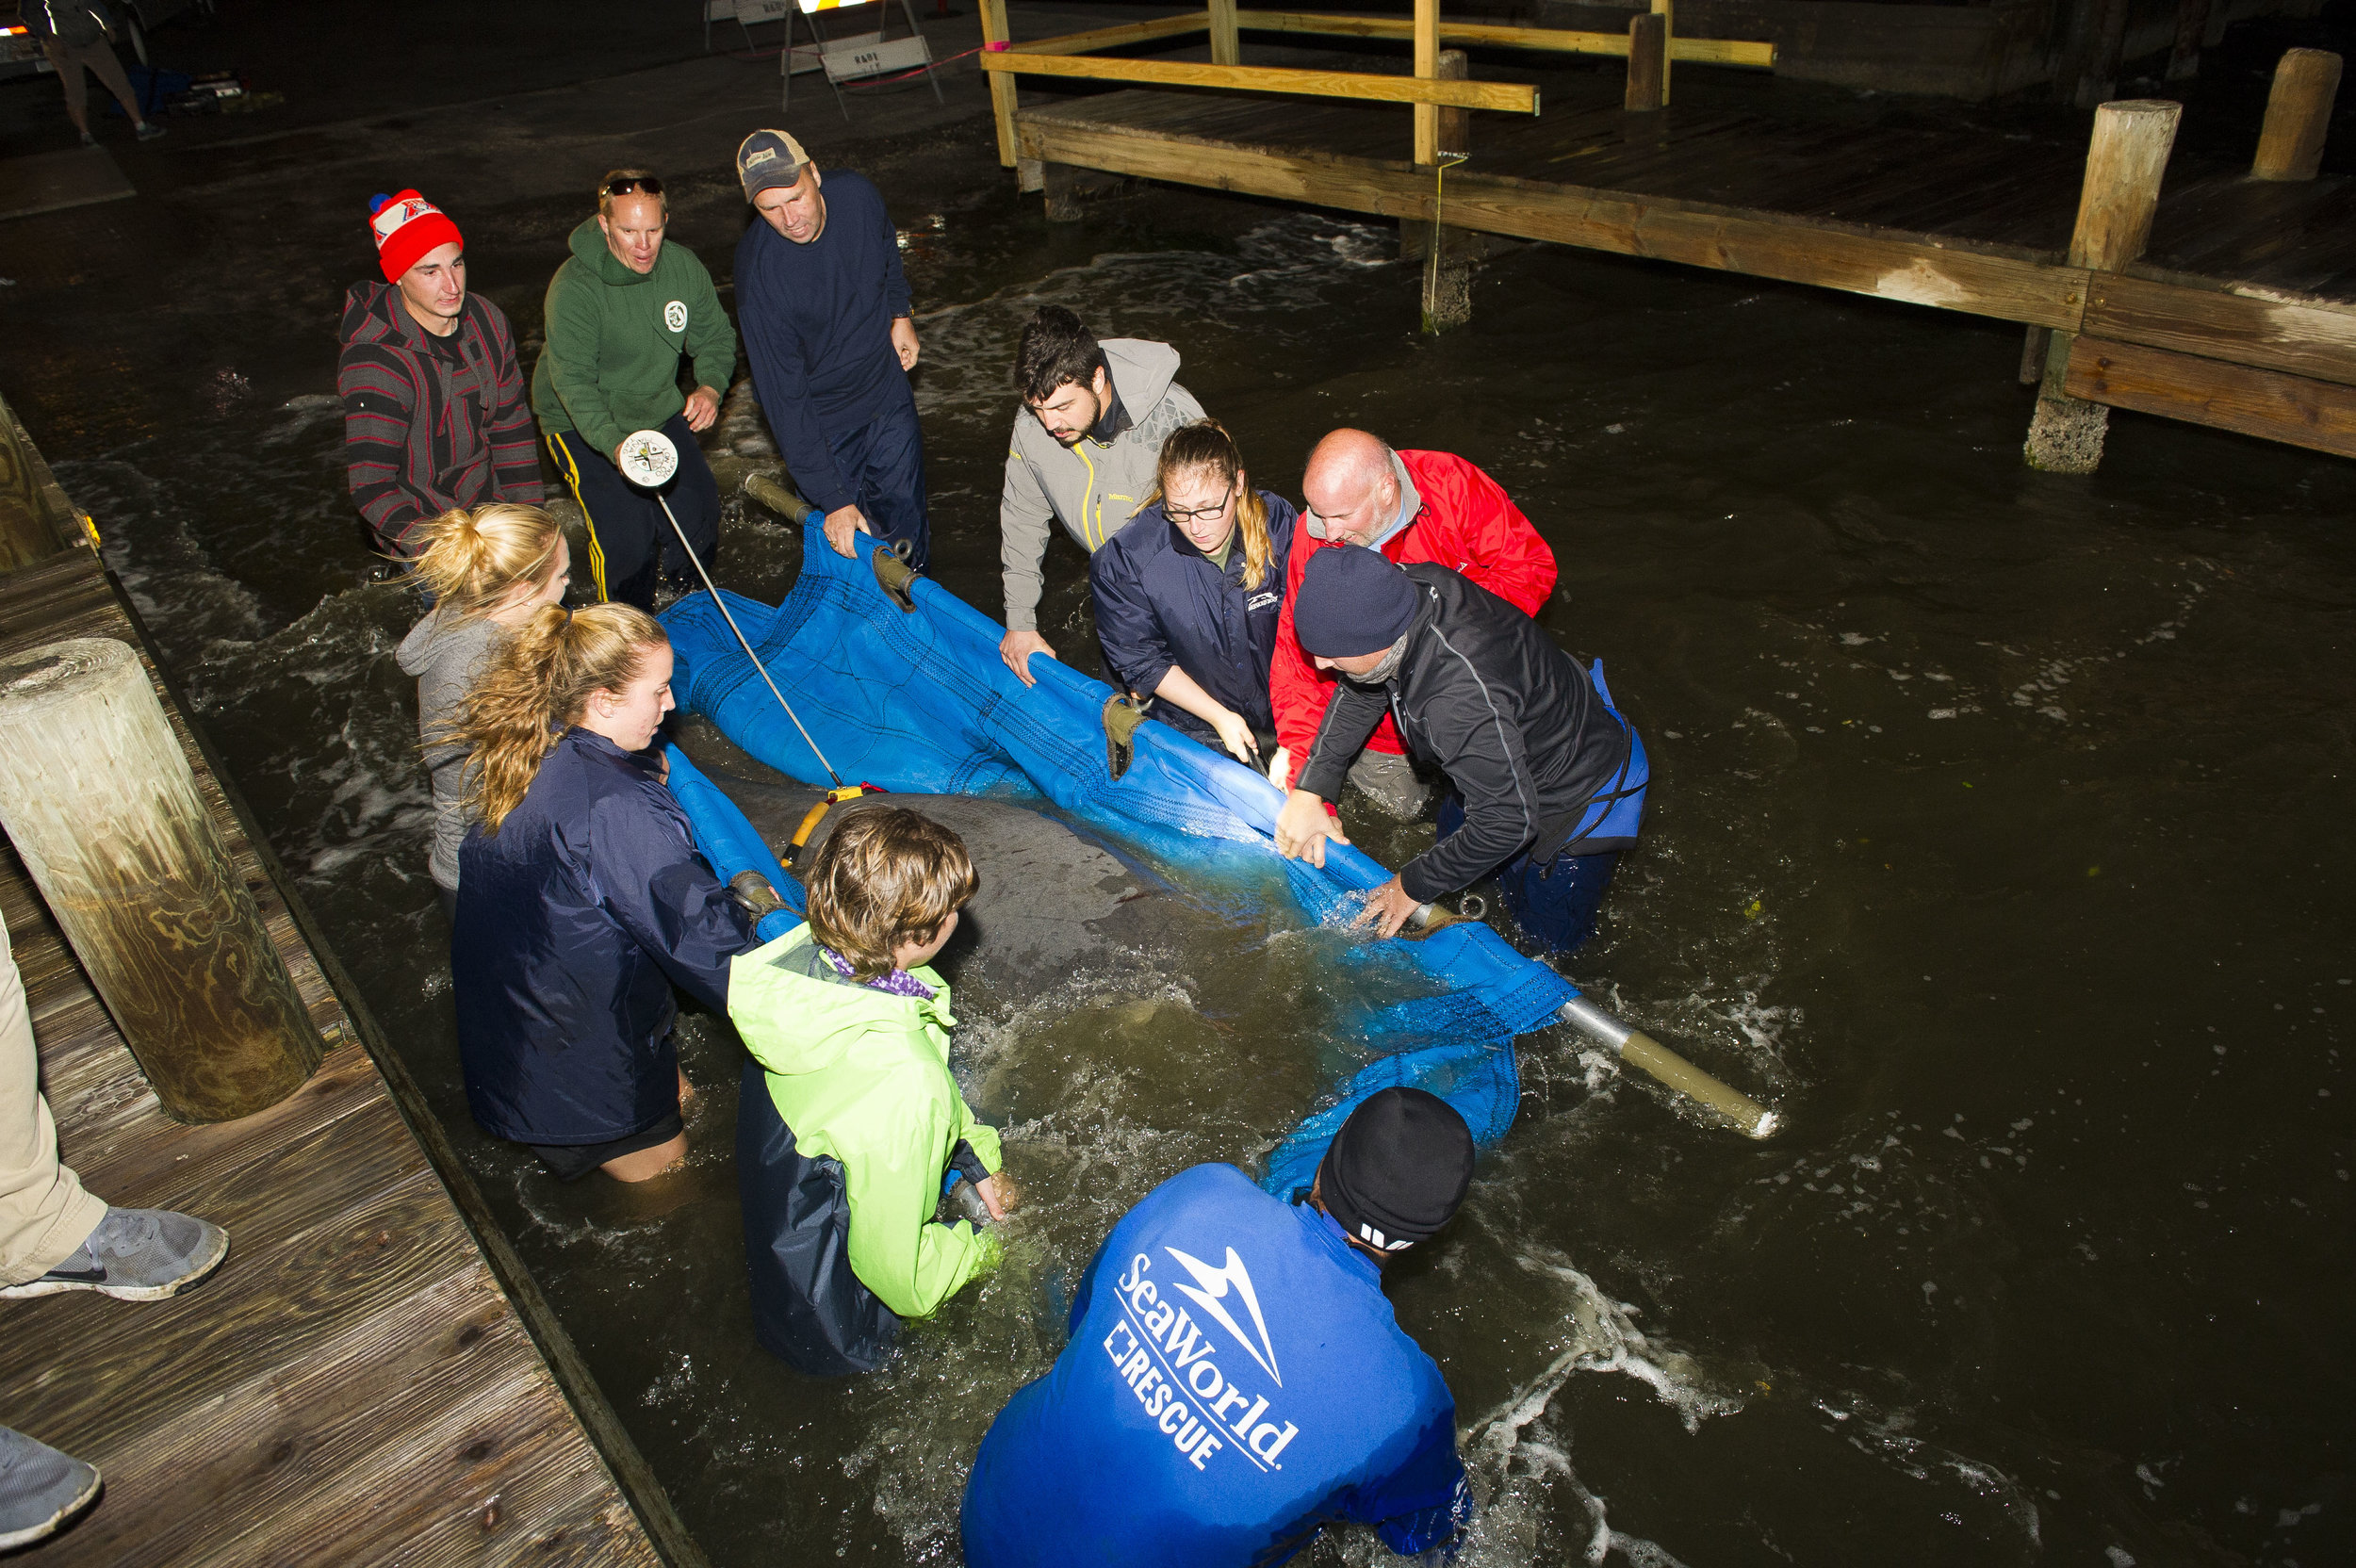 The rescued manatees were all released into waterways near Cape Canaveral, Florida. (Photo: Sea World of Orlando)